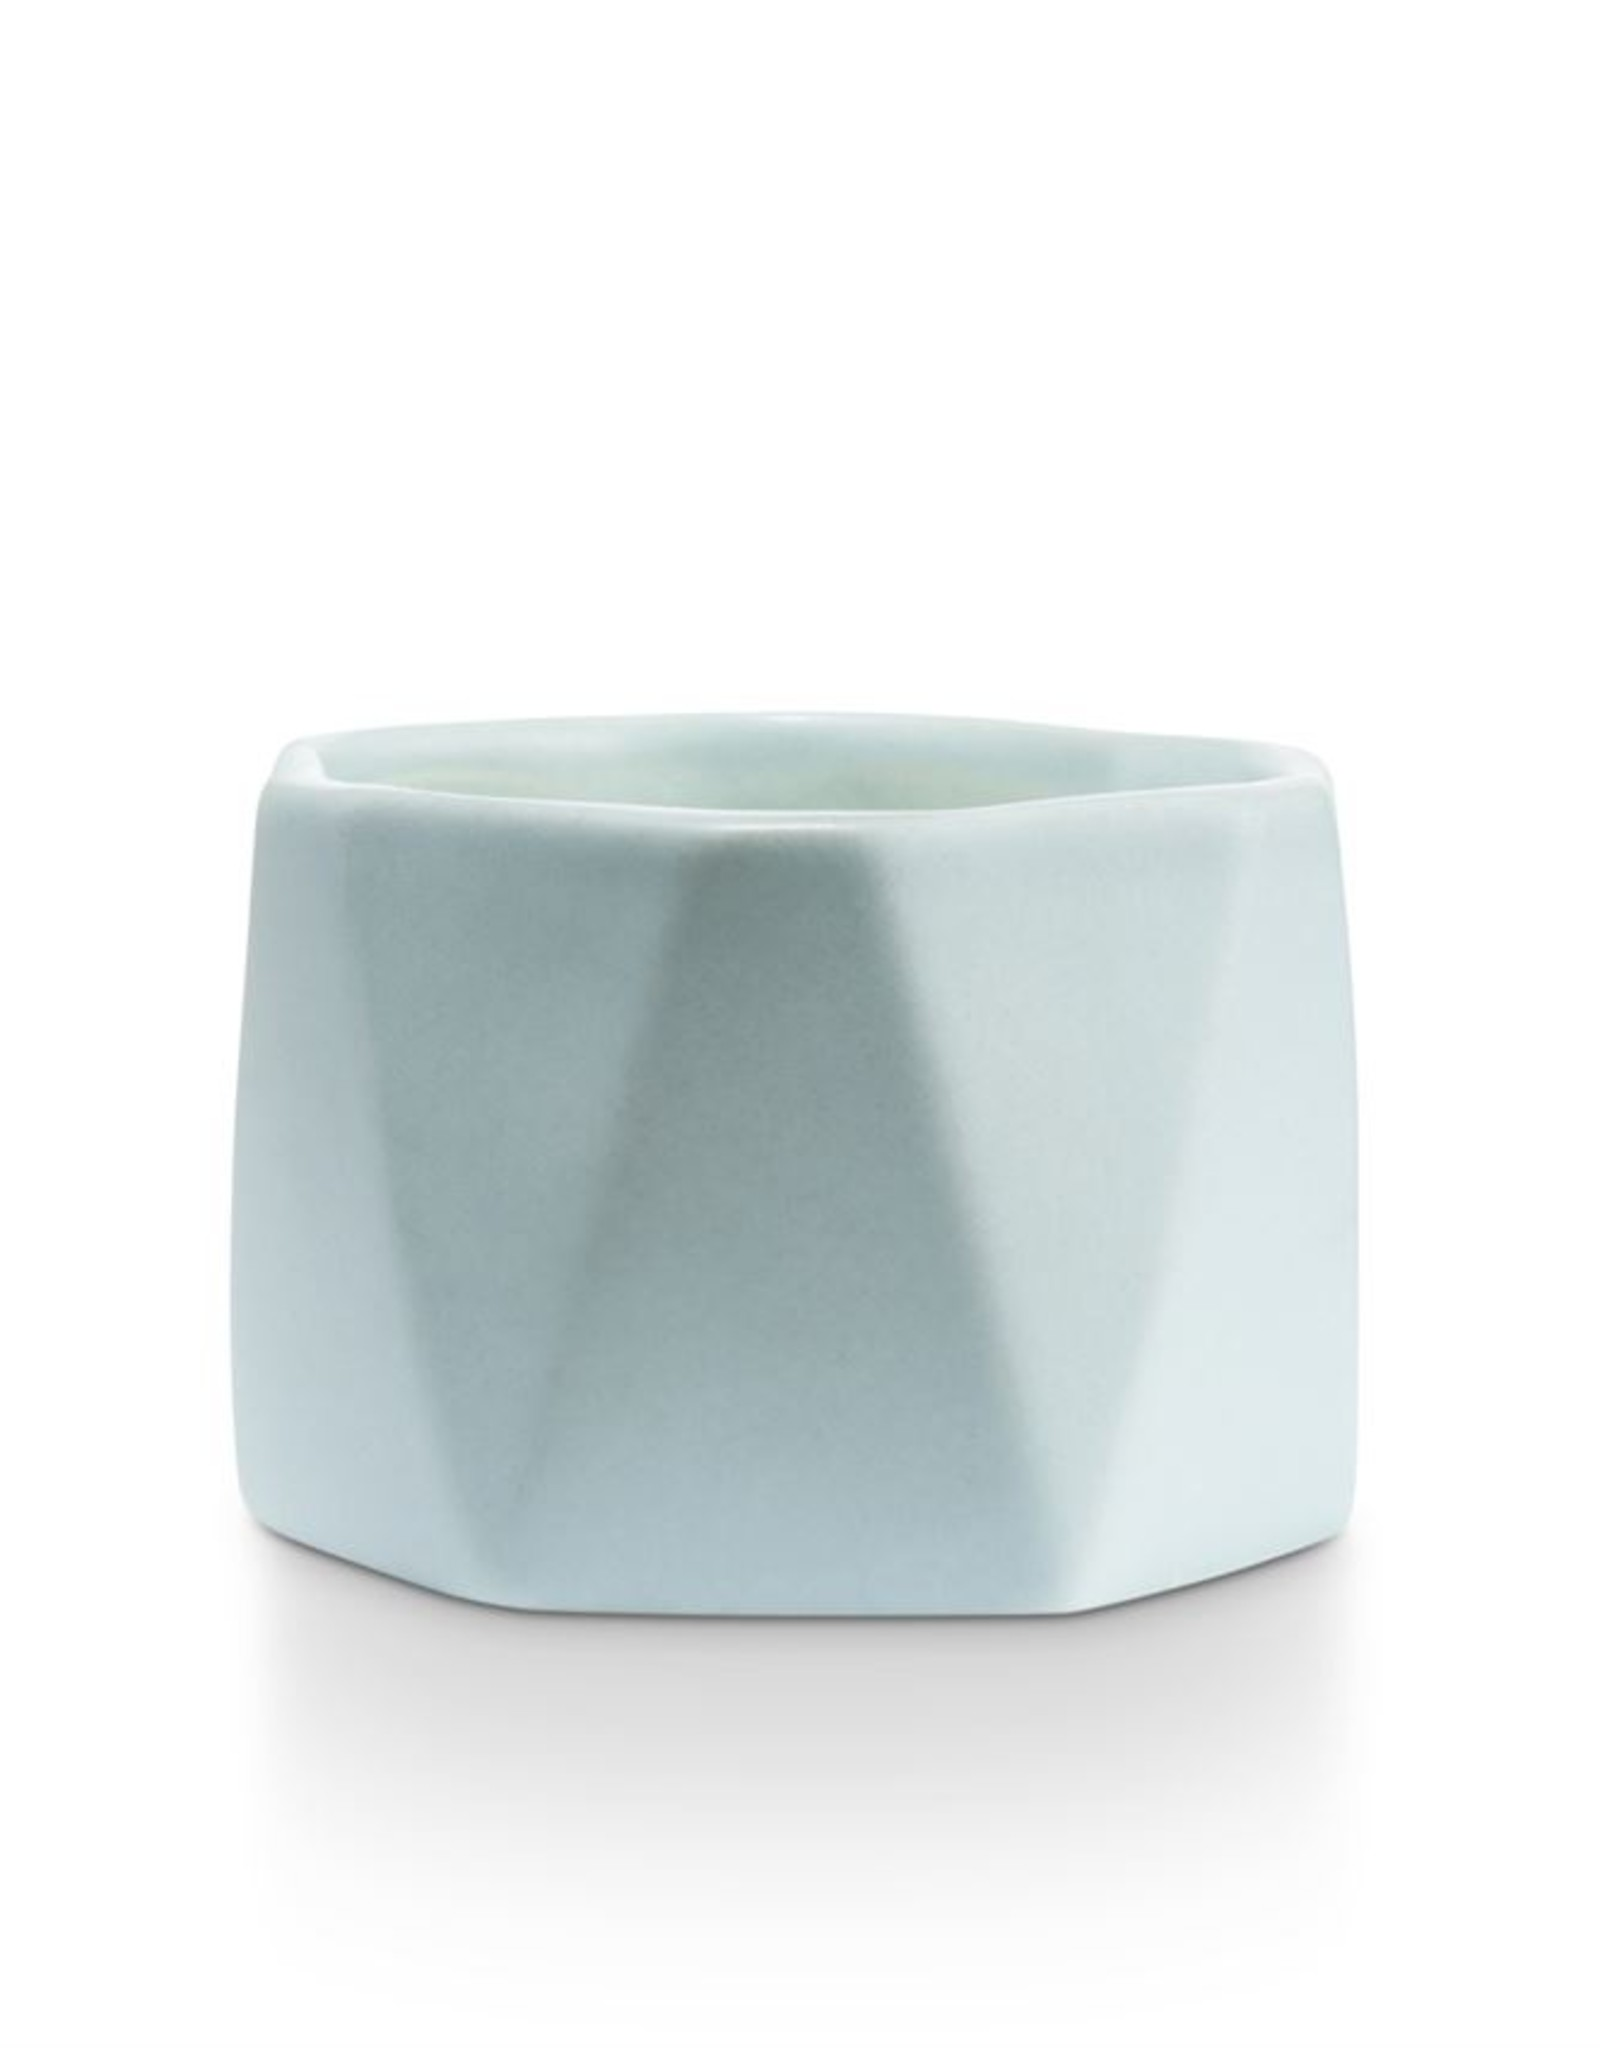 Illume Fresh Sea Salt Dylan Ceramic Candle 4.7oz